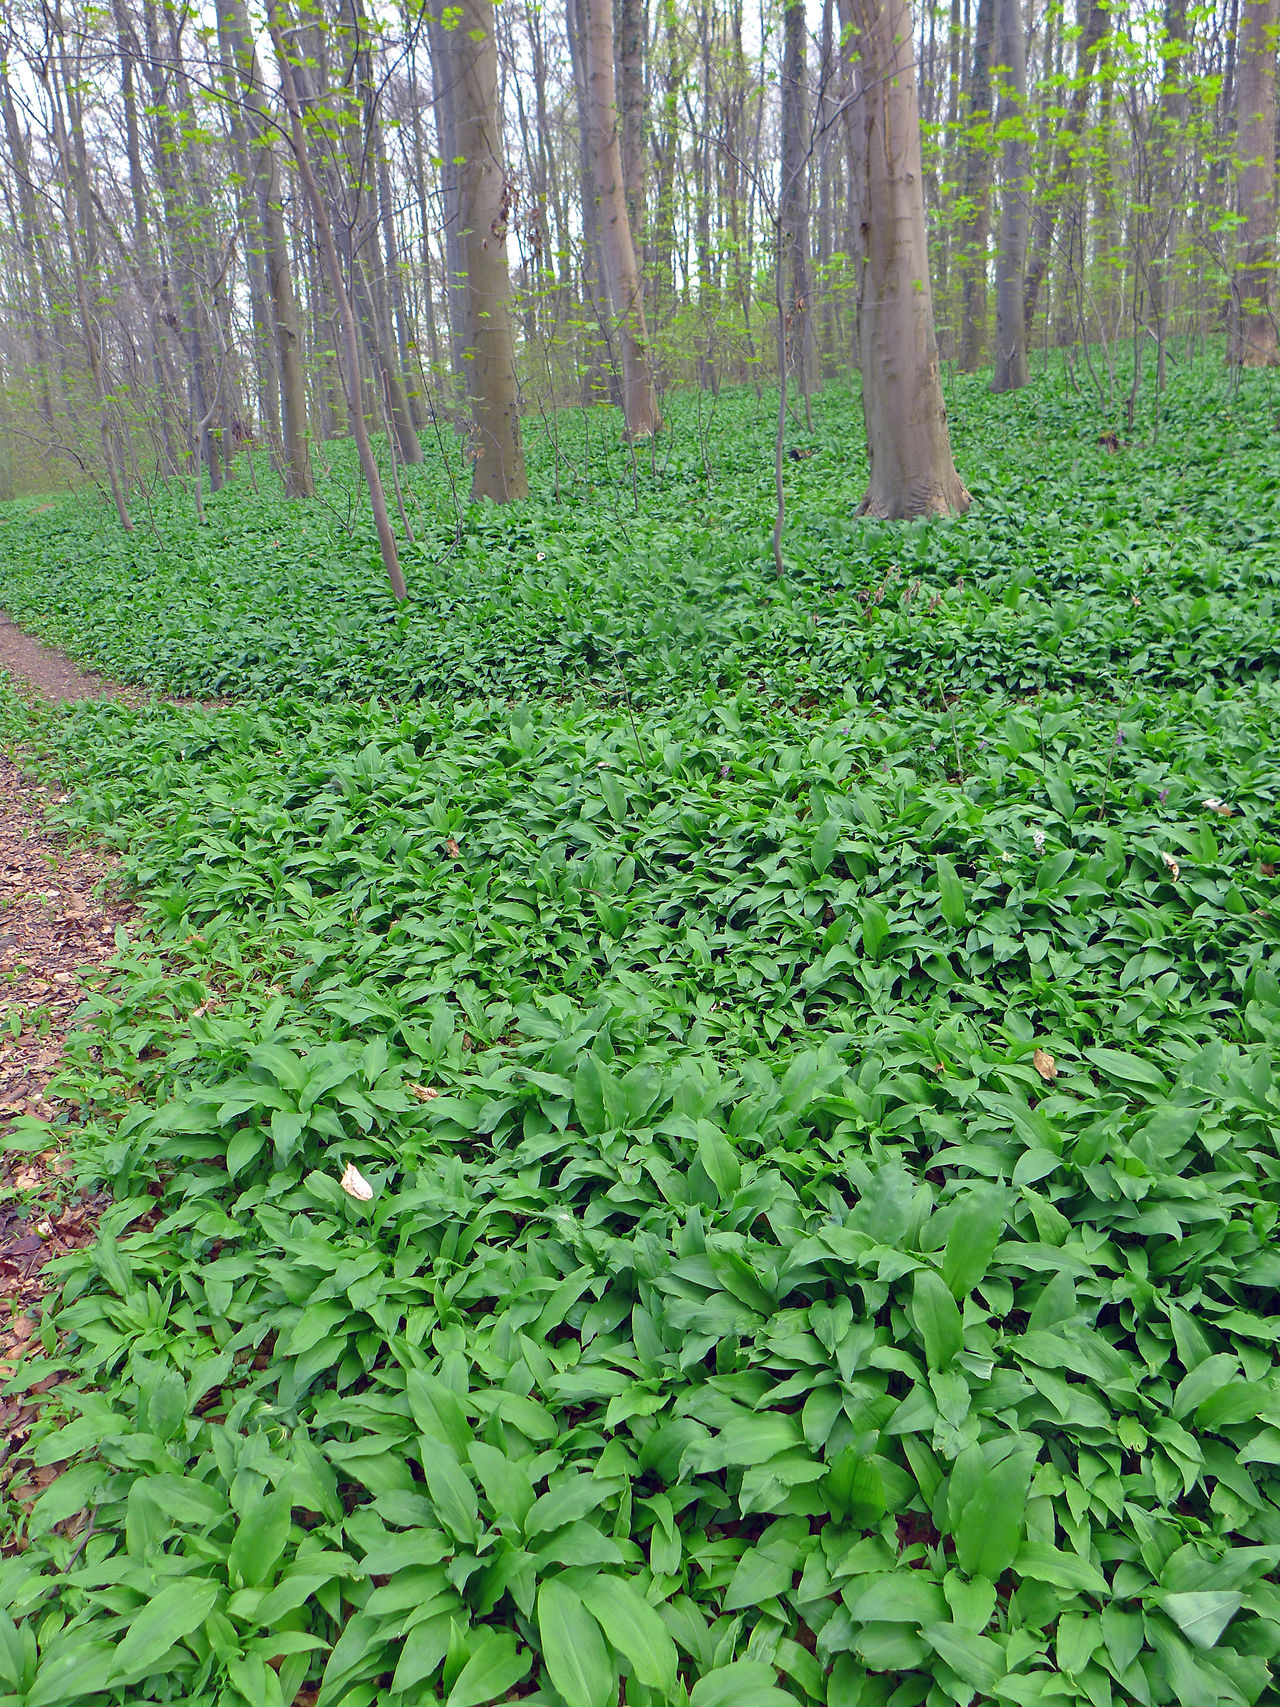 Bärlauchfelder im Wiehengebirge Allium Ursinum Beauty In Nature Bärlauch  Green Color Growing Growth Leaf Leaves Lush Foliage Plant Ramsons Tranquility Wild Garlic